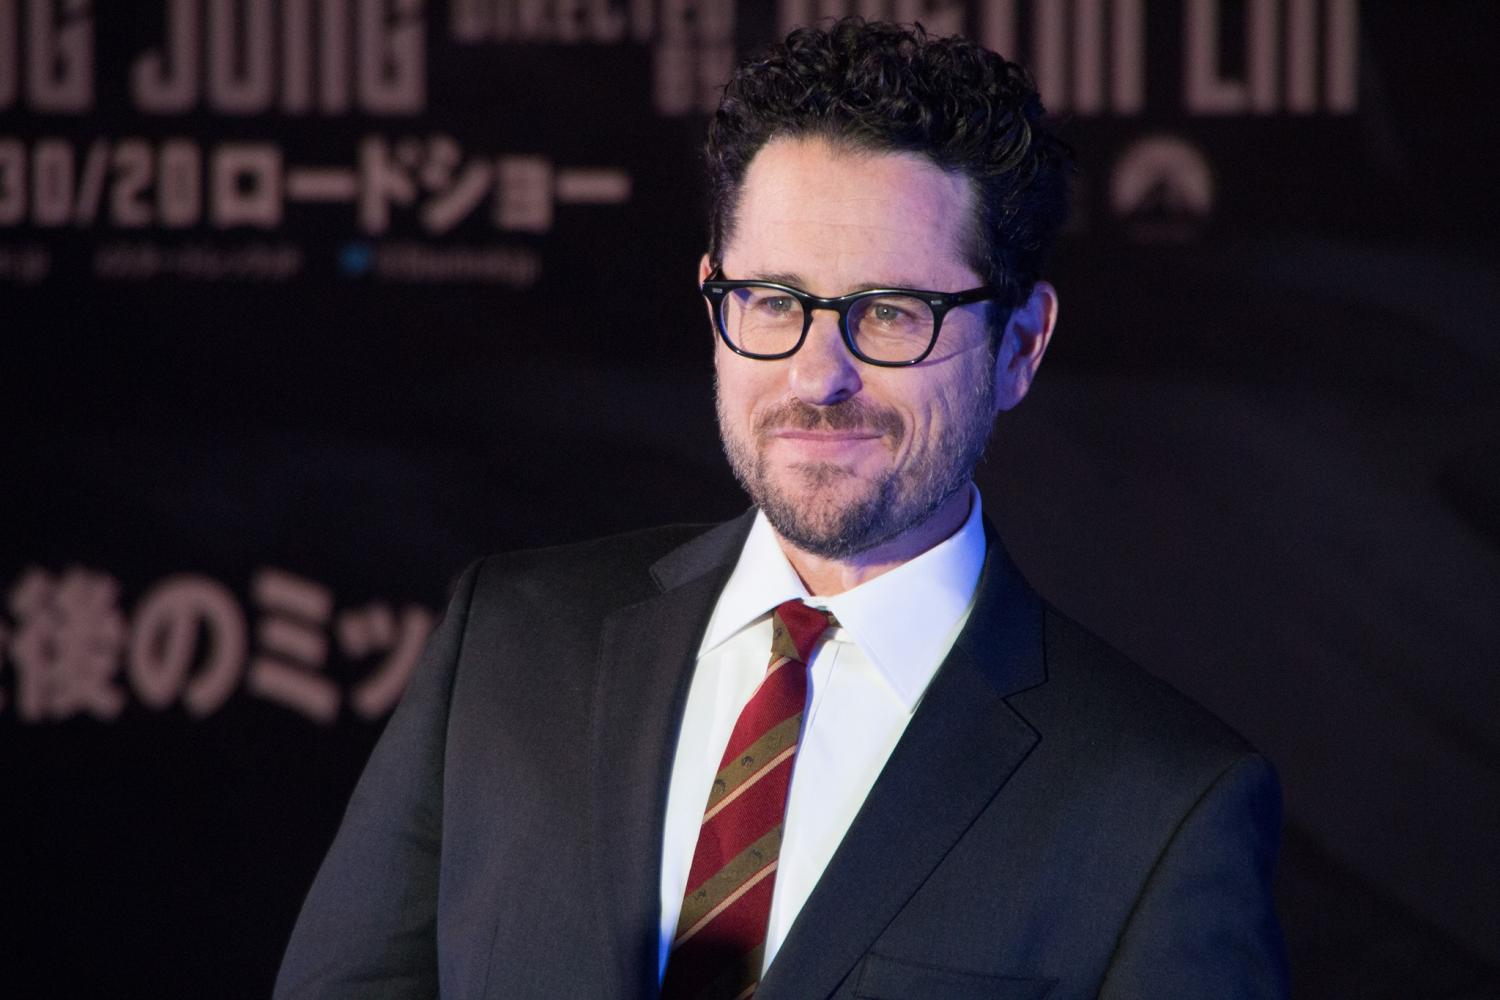 Paramount Could Sue JJ Abrams for Directing Star Wars 9